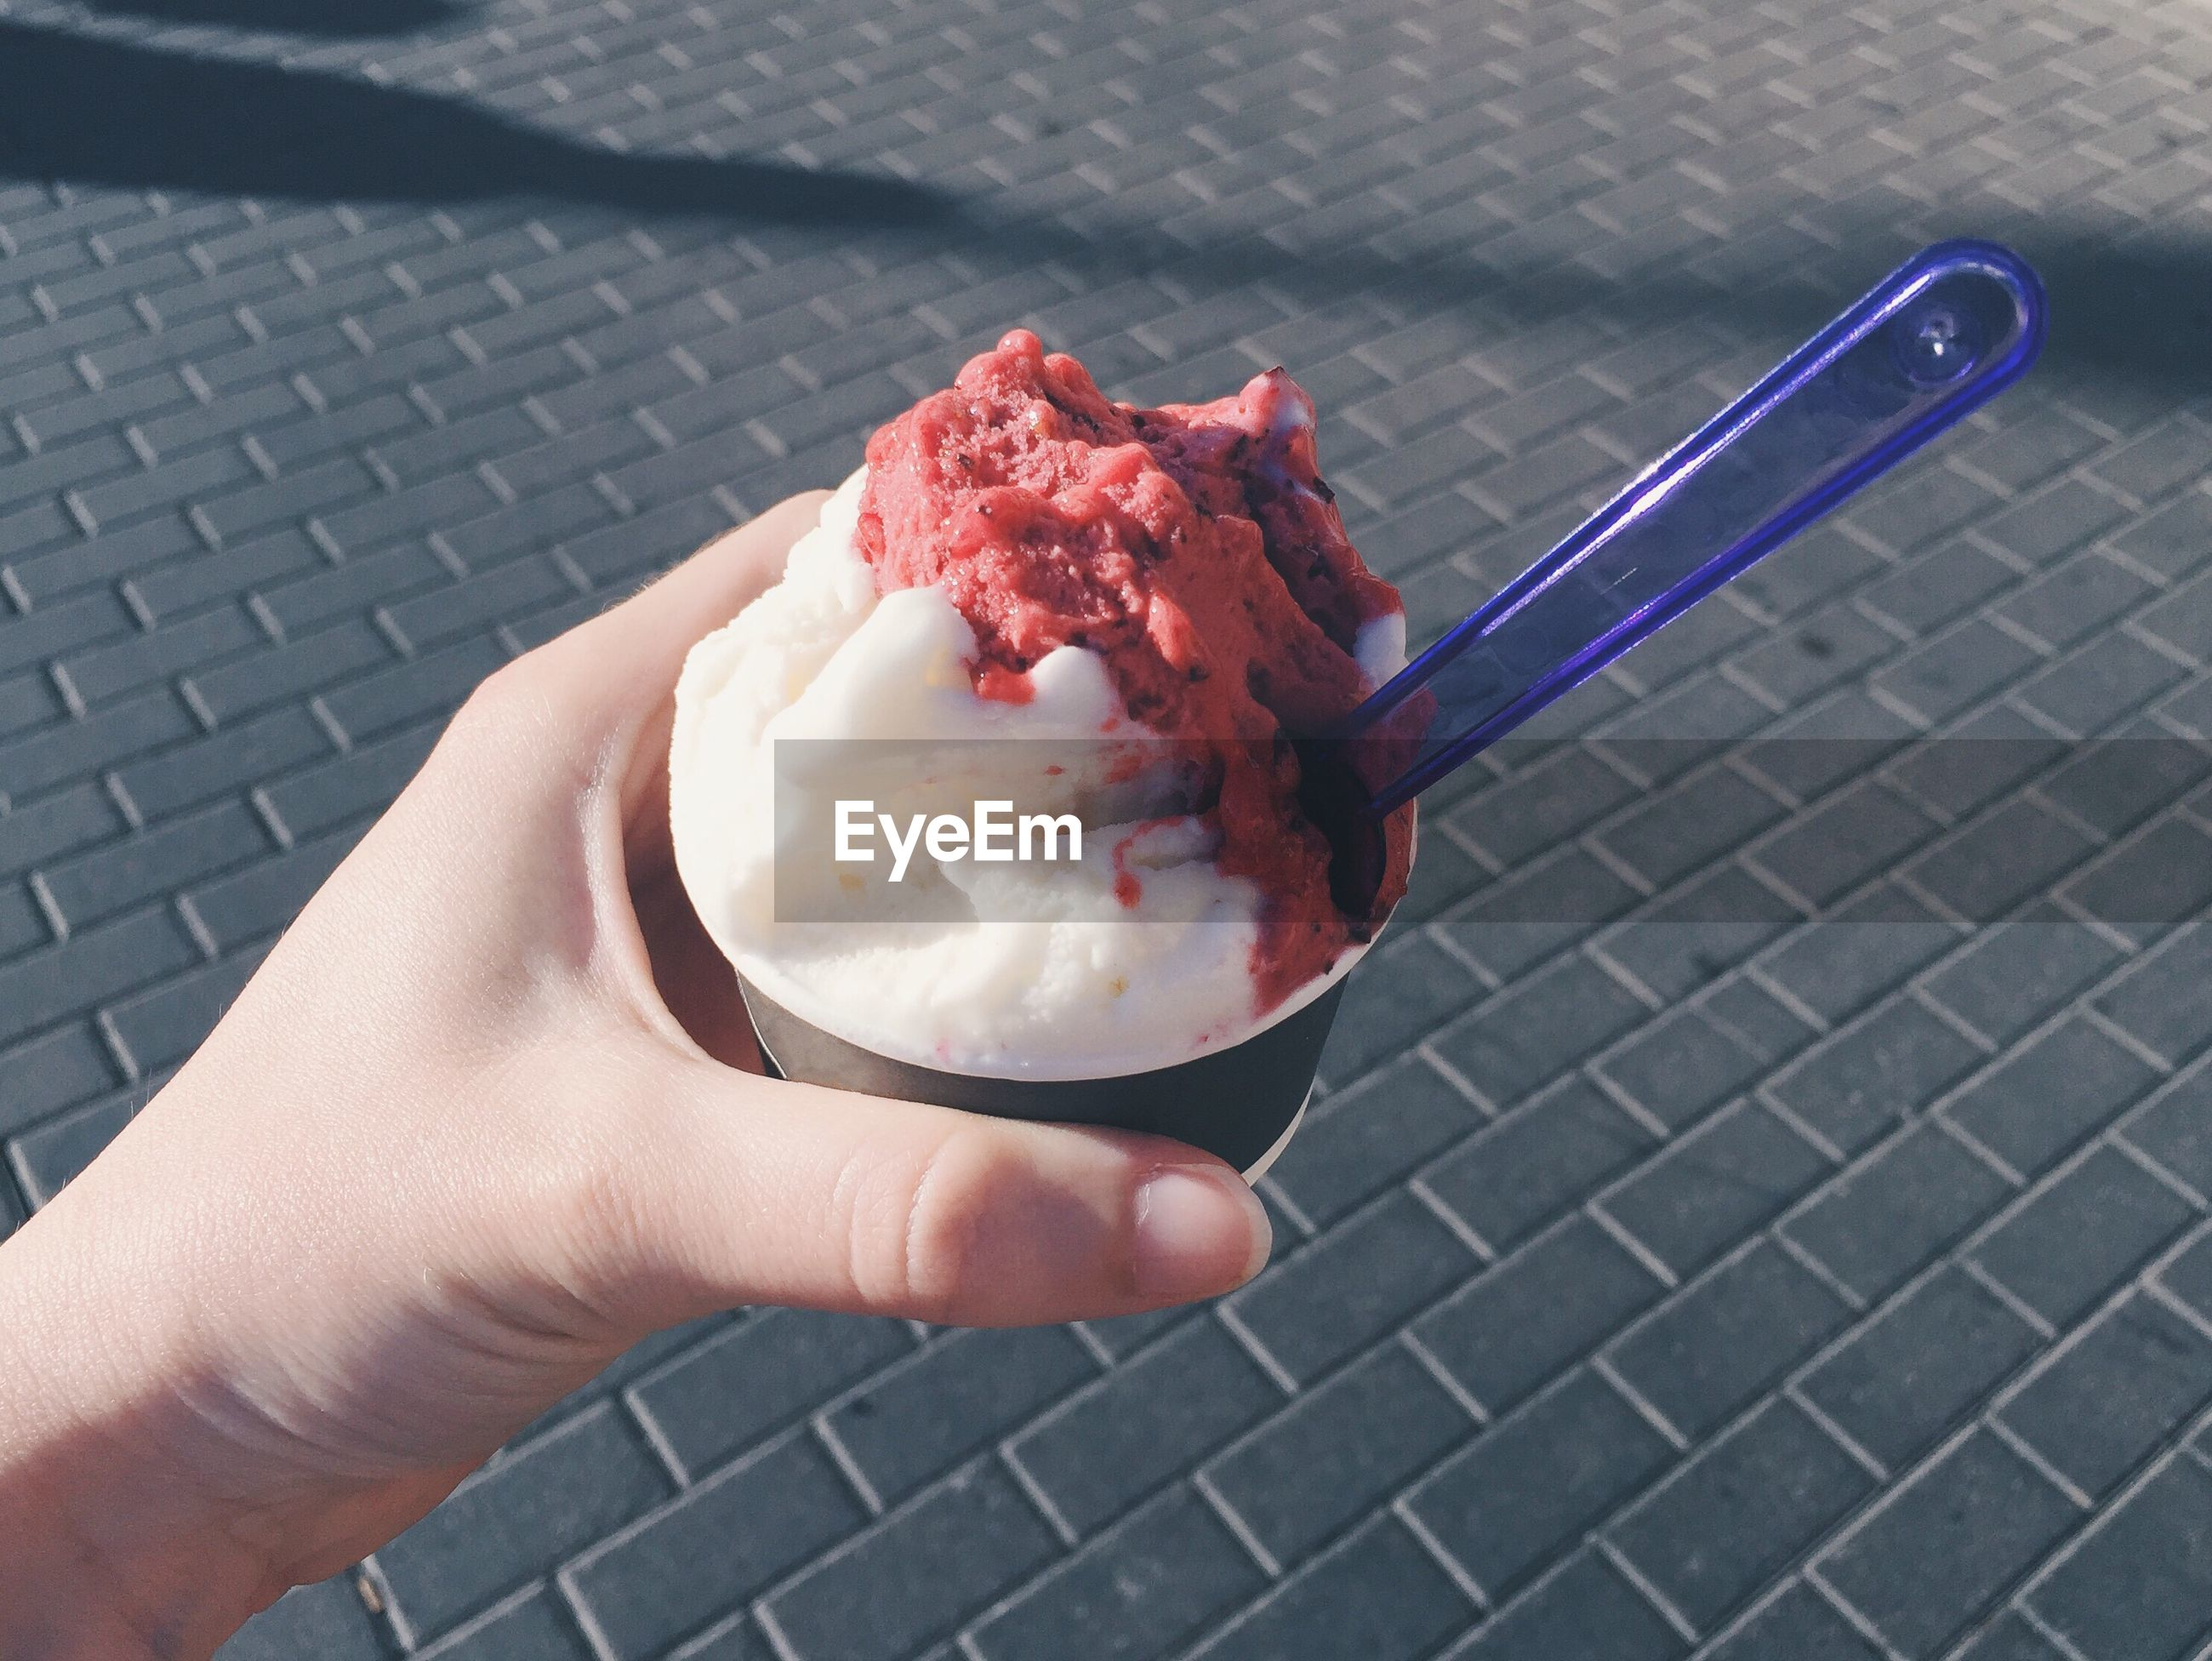 Cropped hand of woman holding ice cream cup against footpath in city during summer